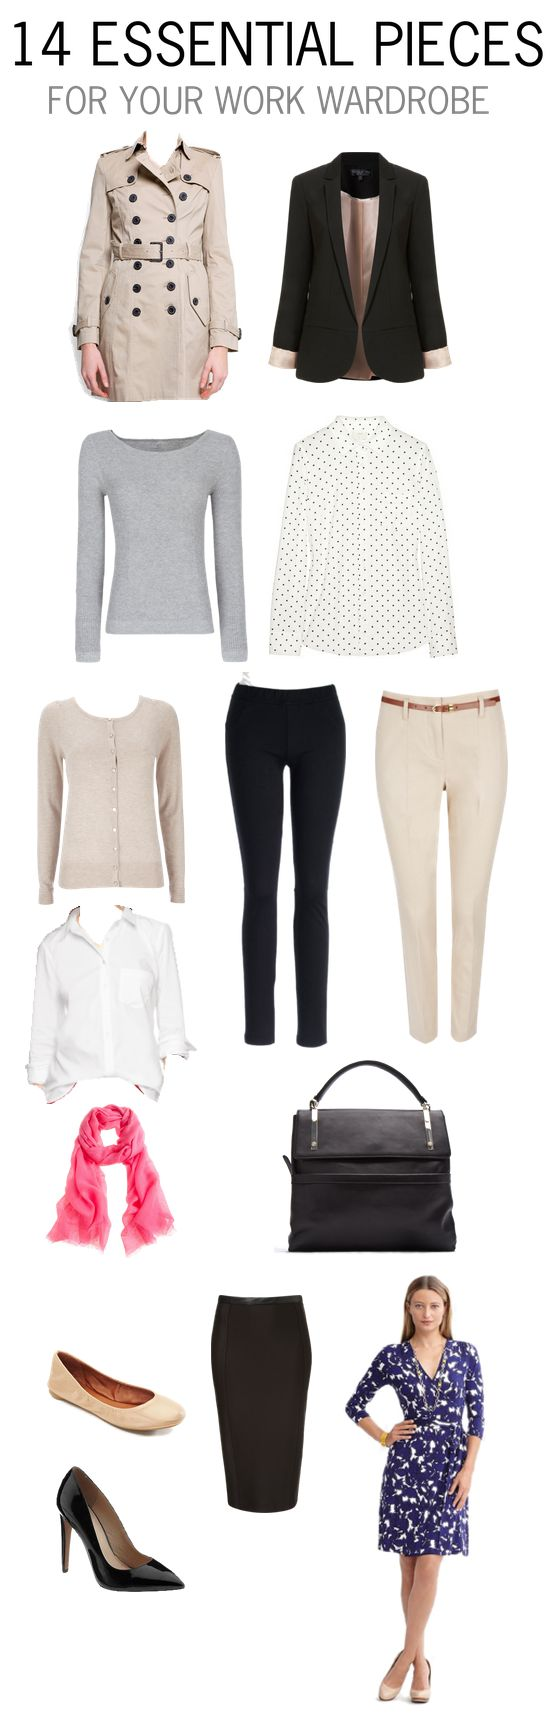 14 Essential Pieces For Your Work Wardrobe - Thanks Jaclyn! X-cept trade the skinny pants for classic pants. Skinny pants aren't professional for a conservative office.